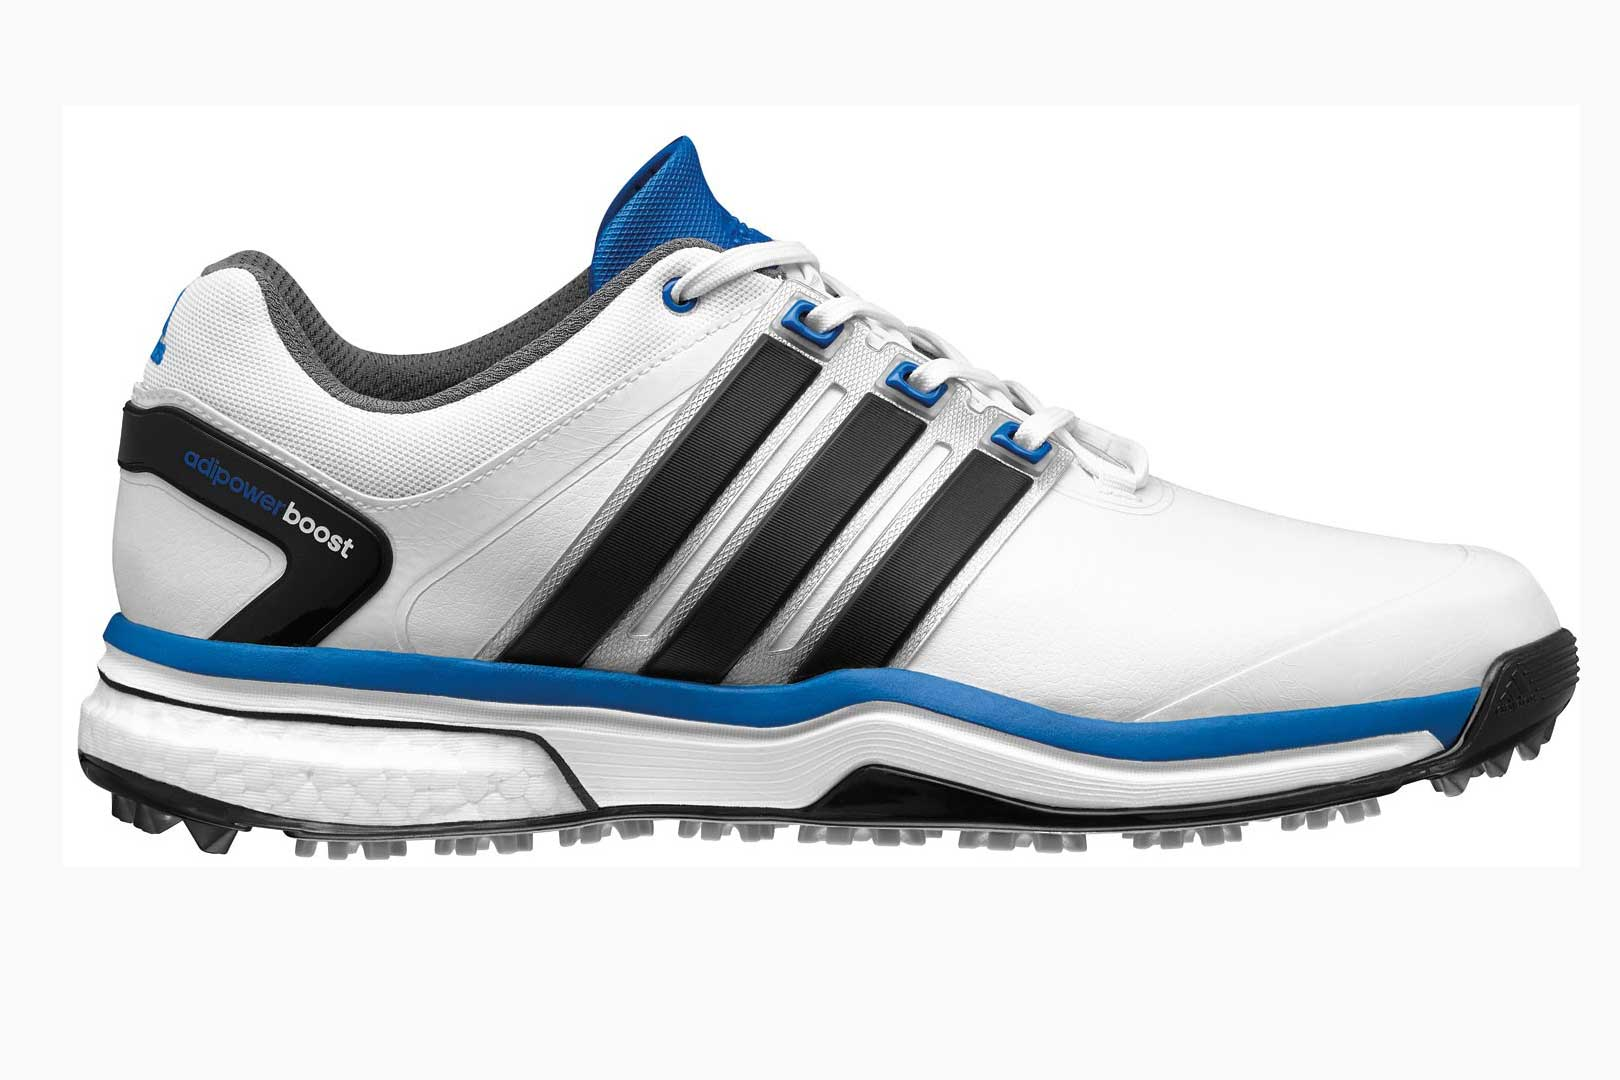 adidas adipower Boost shoes have proved a big hit on Tour this season